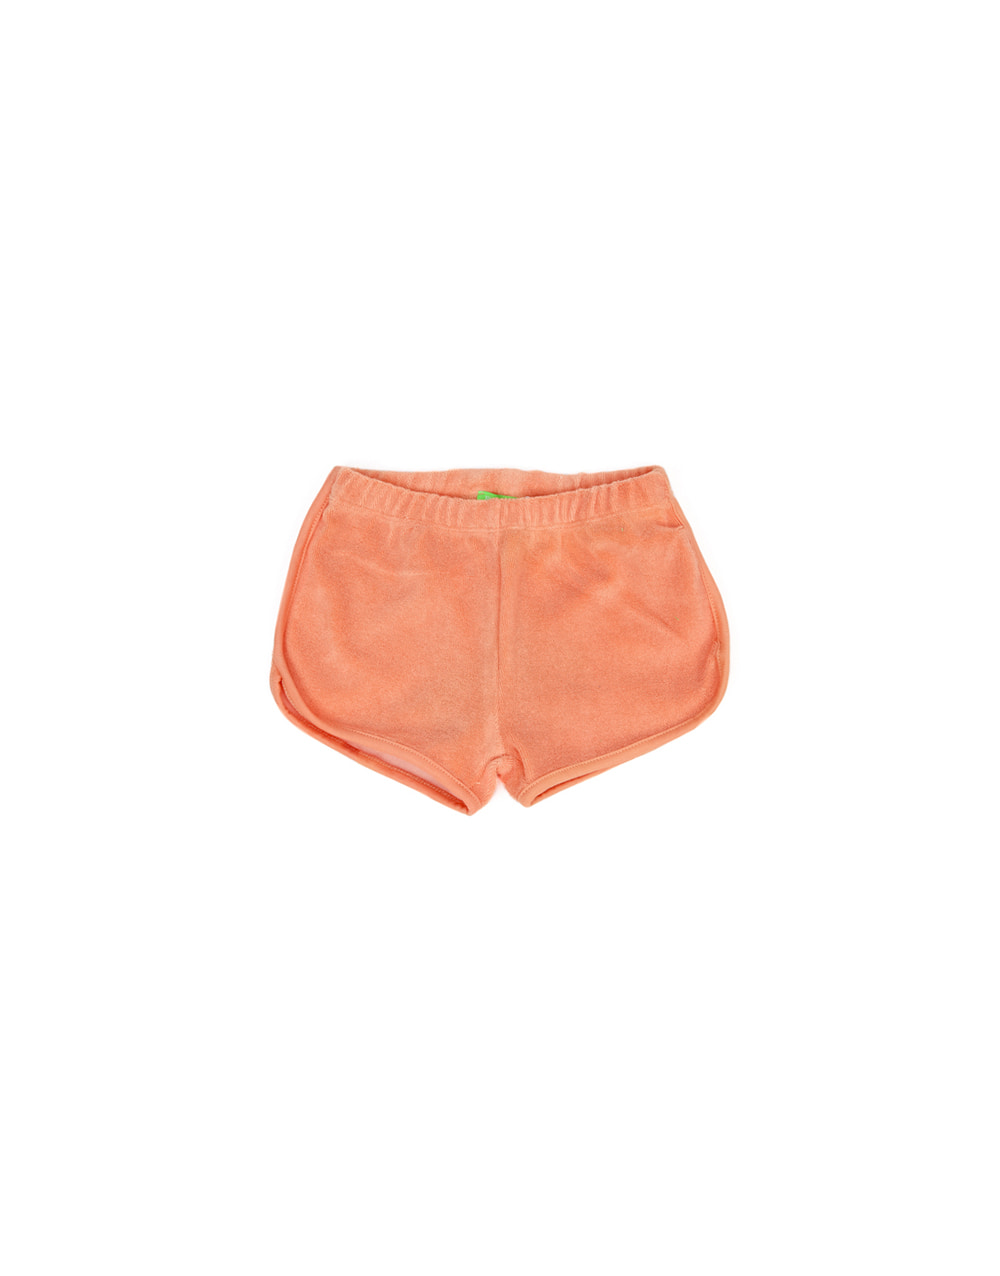 LILY BALOU  Arthur Shorts  Canyon Sunset